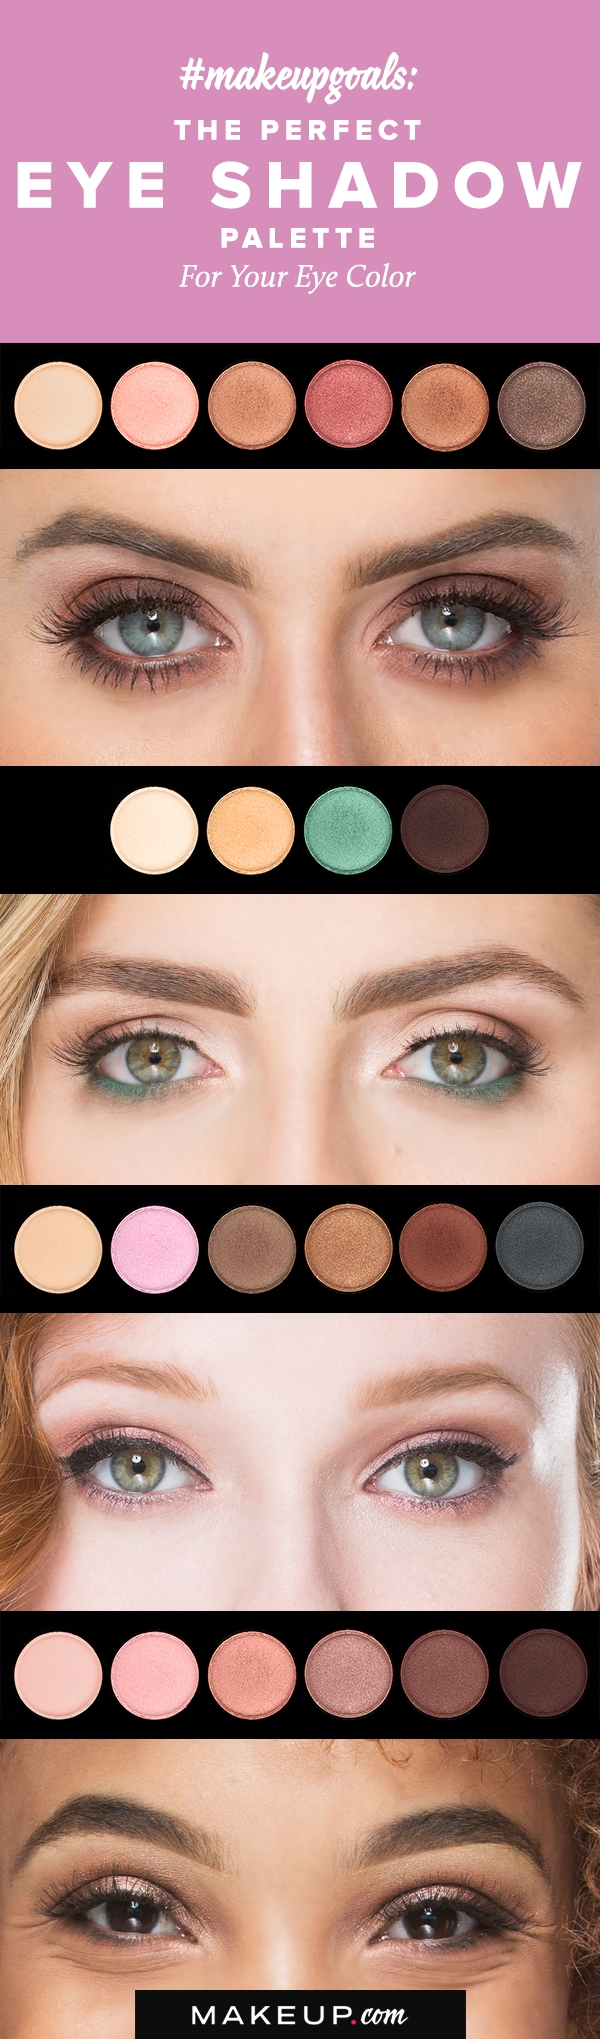 The Best Eyeshadow Palette For Your Eye Color | Eye Makeup | Best pertaining to Best Eyeshadow Palette For Blue Green Eyes